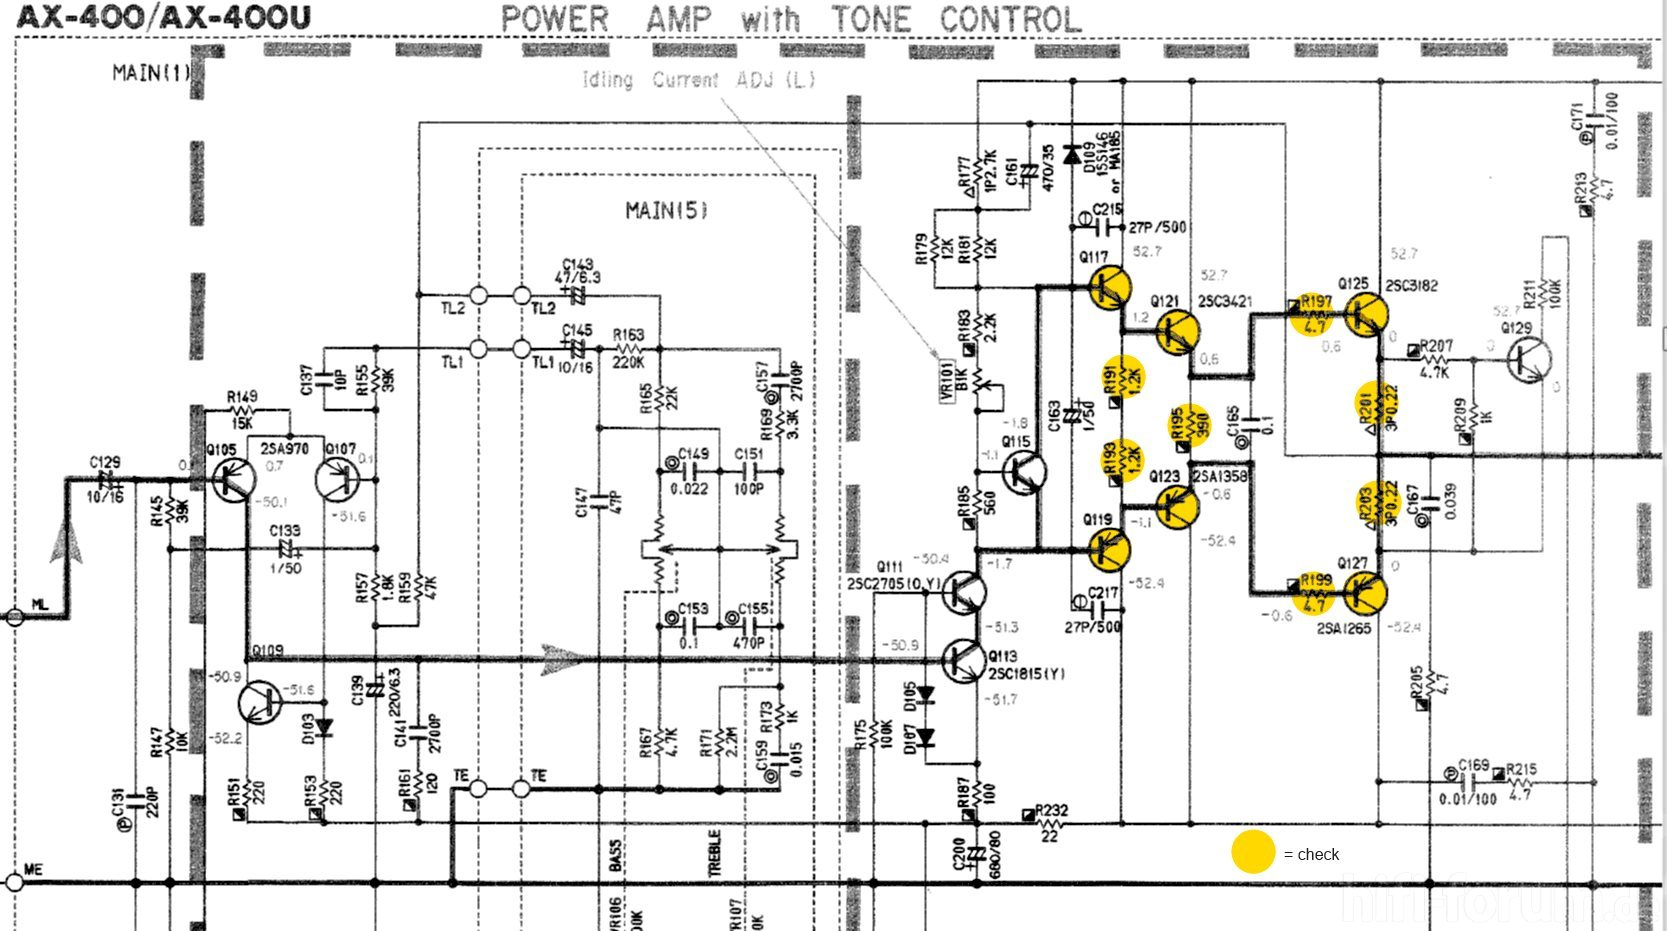 Yamaha Amp Schematic Not Lossing Wiring Diagram This Picture Is A Preview Of P2200 Powerampstage Sch Ax 400 Detail Left Power Marked Ax400 Rh Hifi Forum De Yfz450 Service Manual